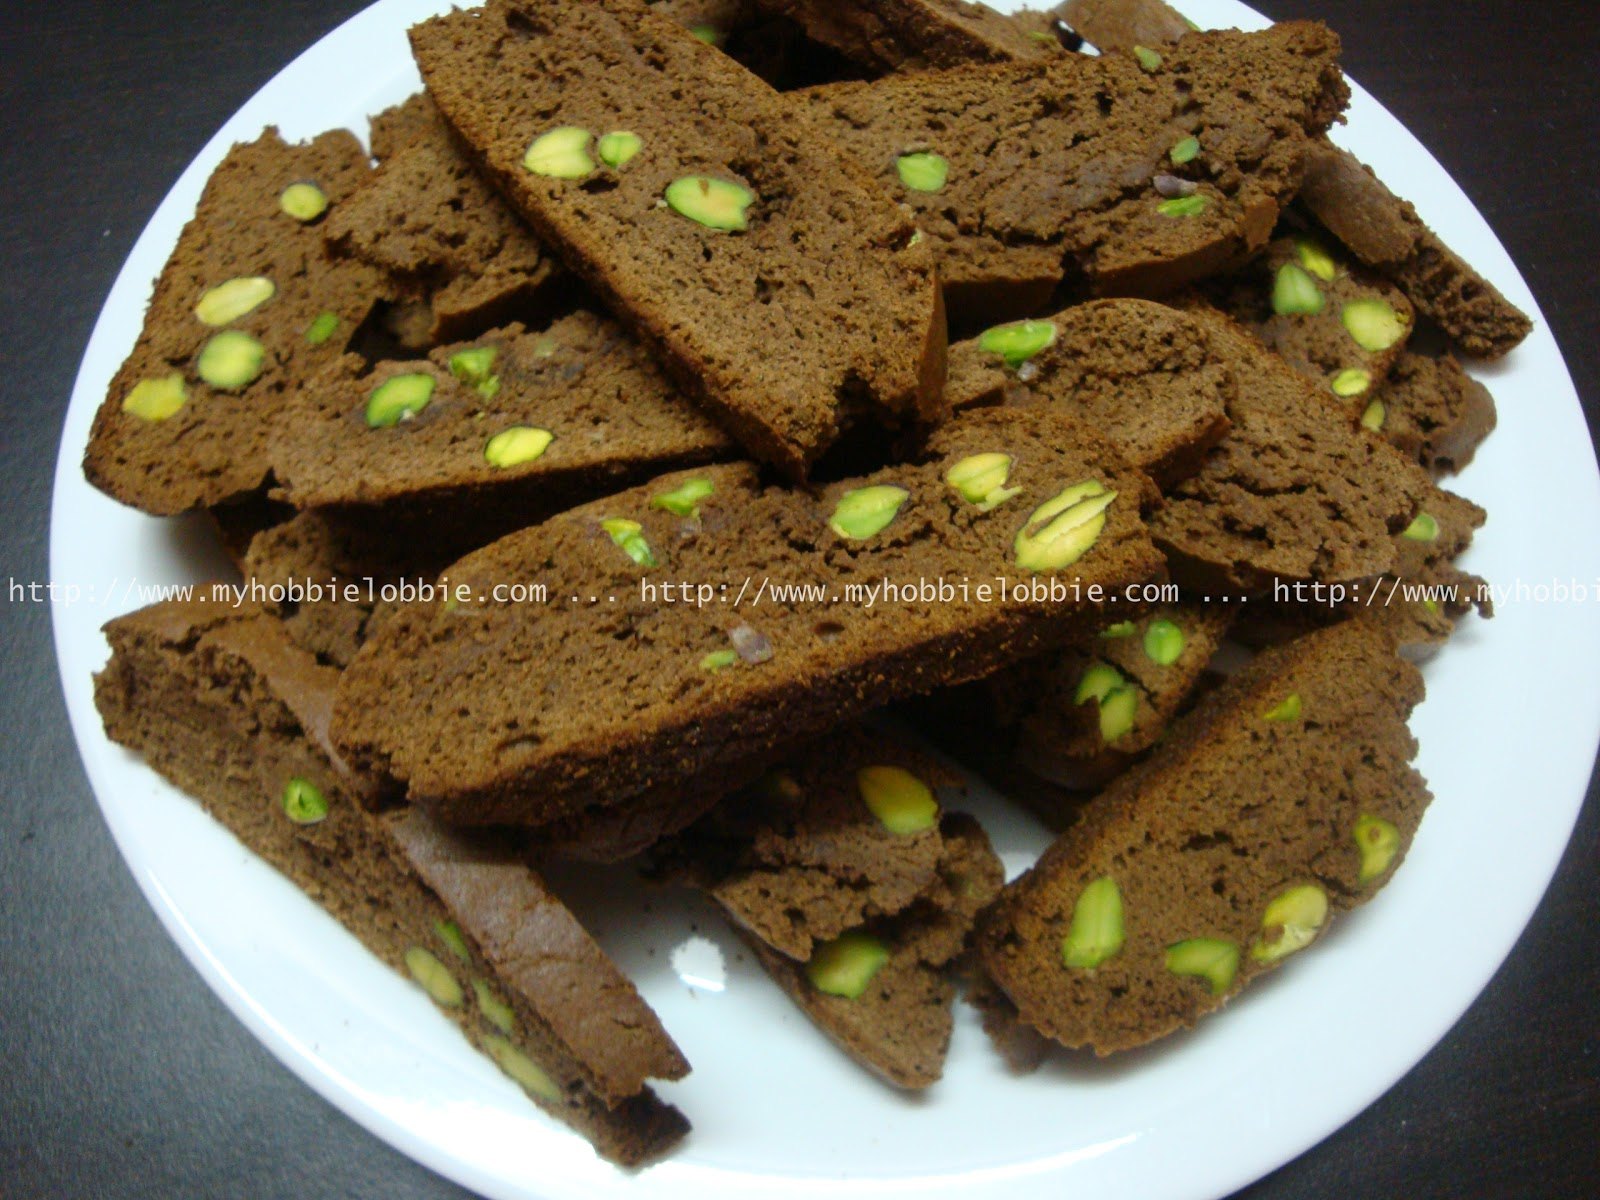 My Hobbie Lobbie: Week 4 of 12WOCT: Chocolate Pistachio Biscotti